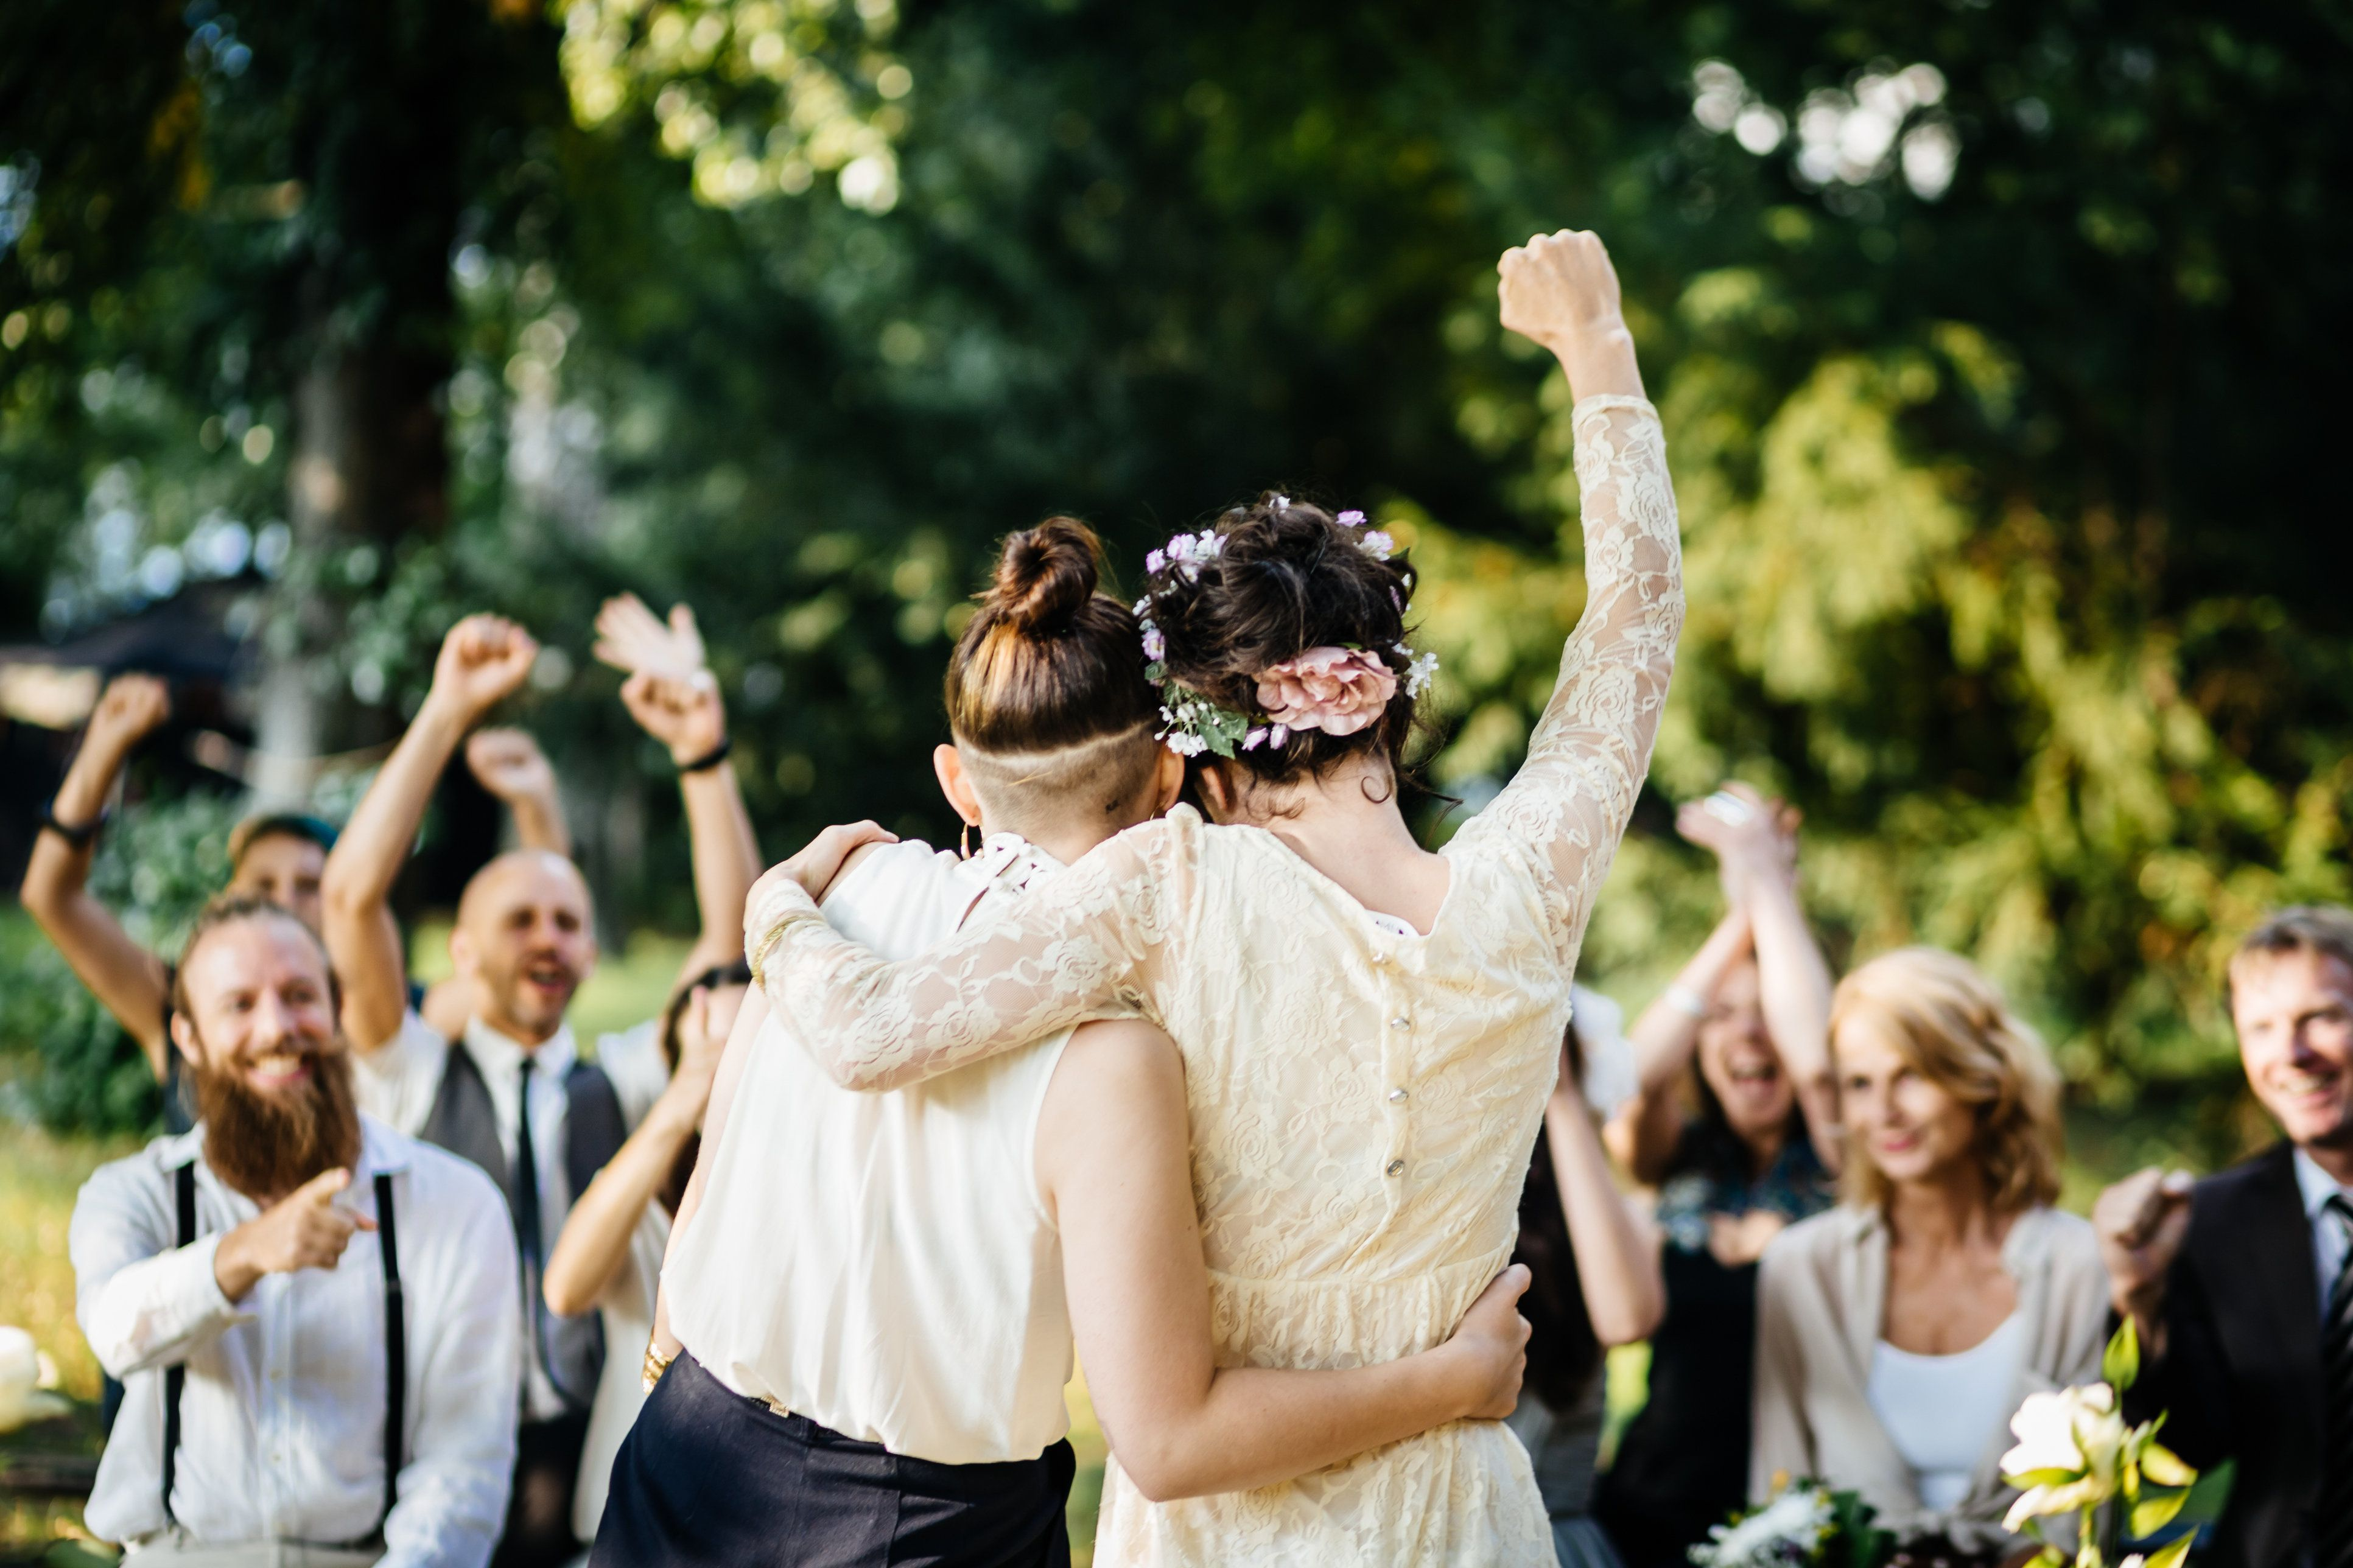 Young lesbian couple celebrating their marriage in front of their friends. The wedding ceremony is outdoors